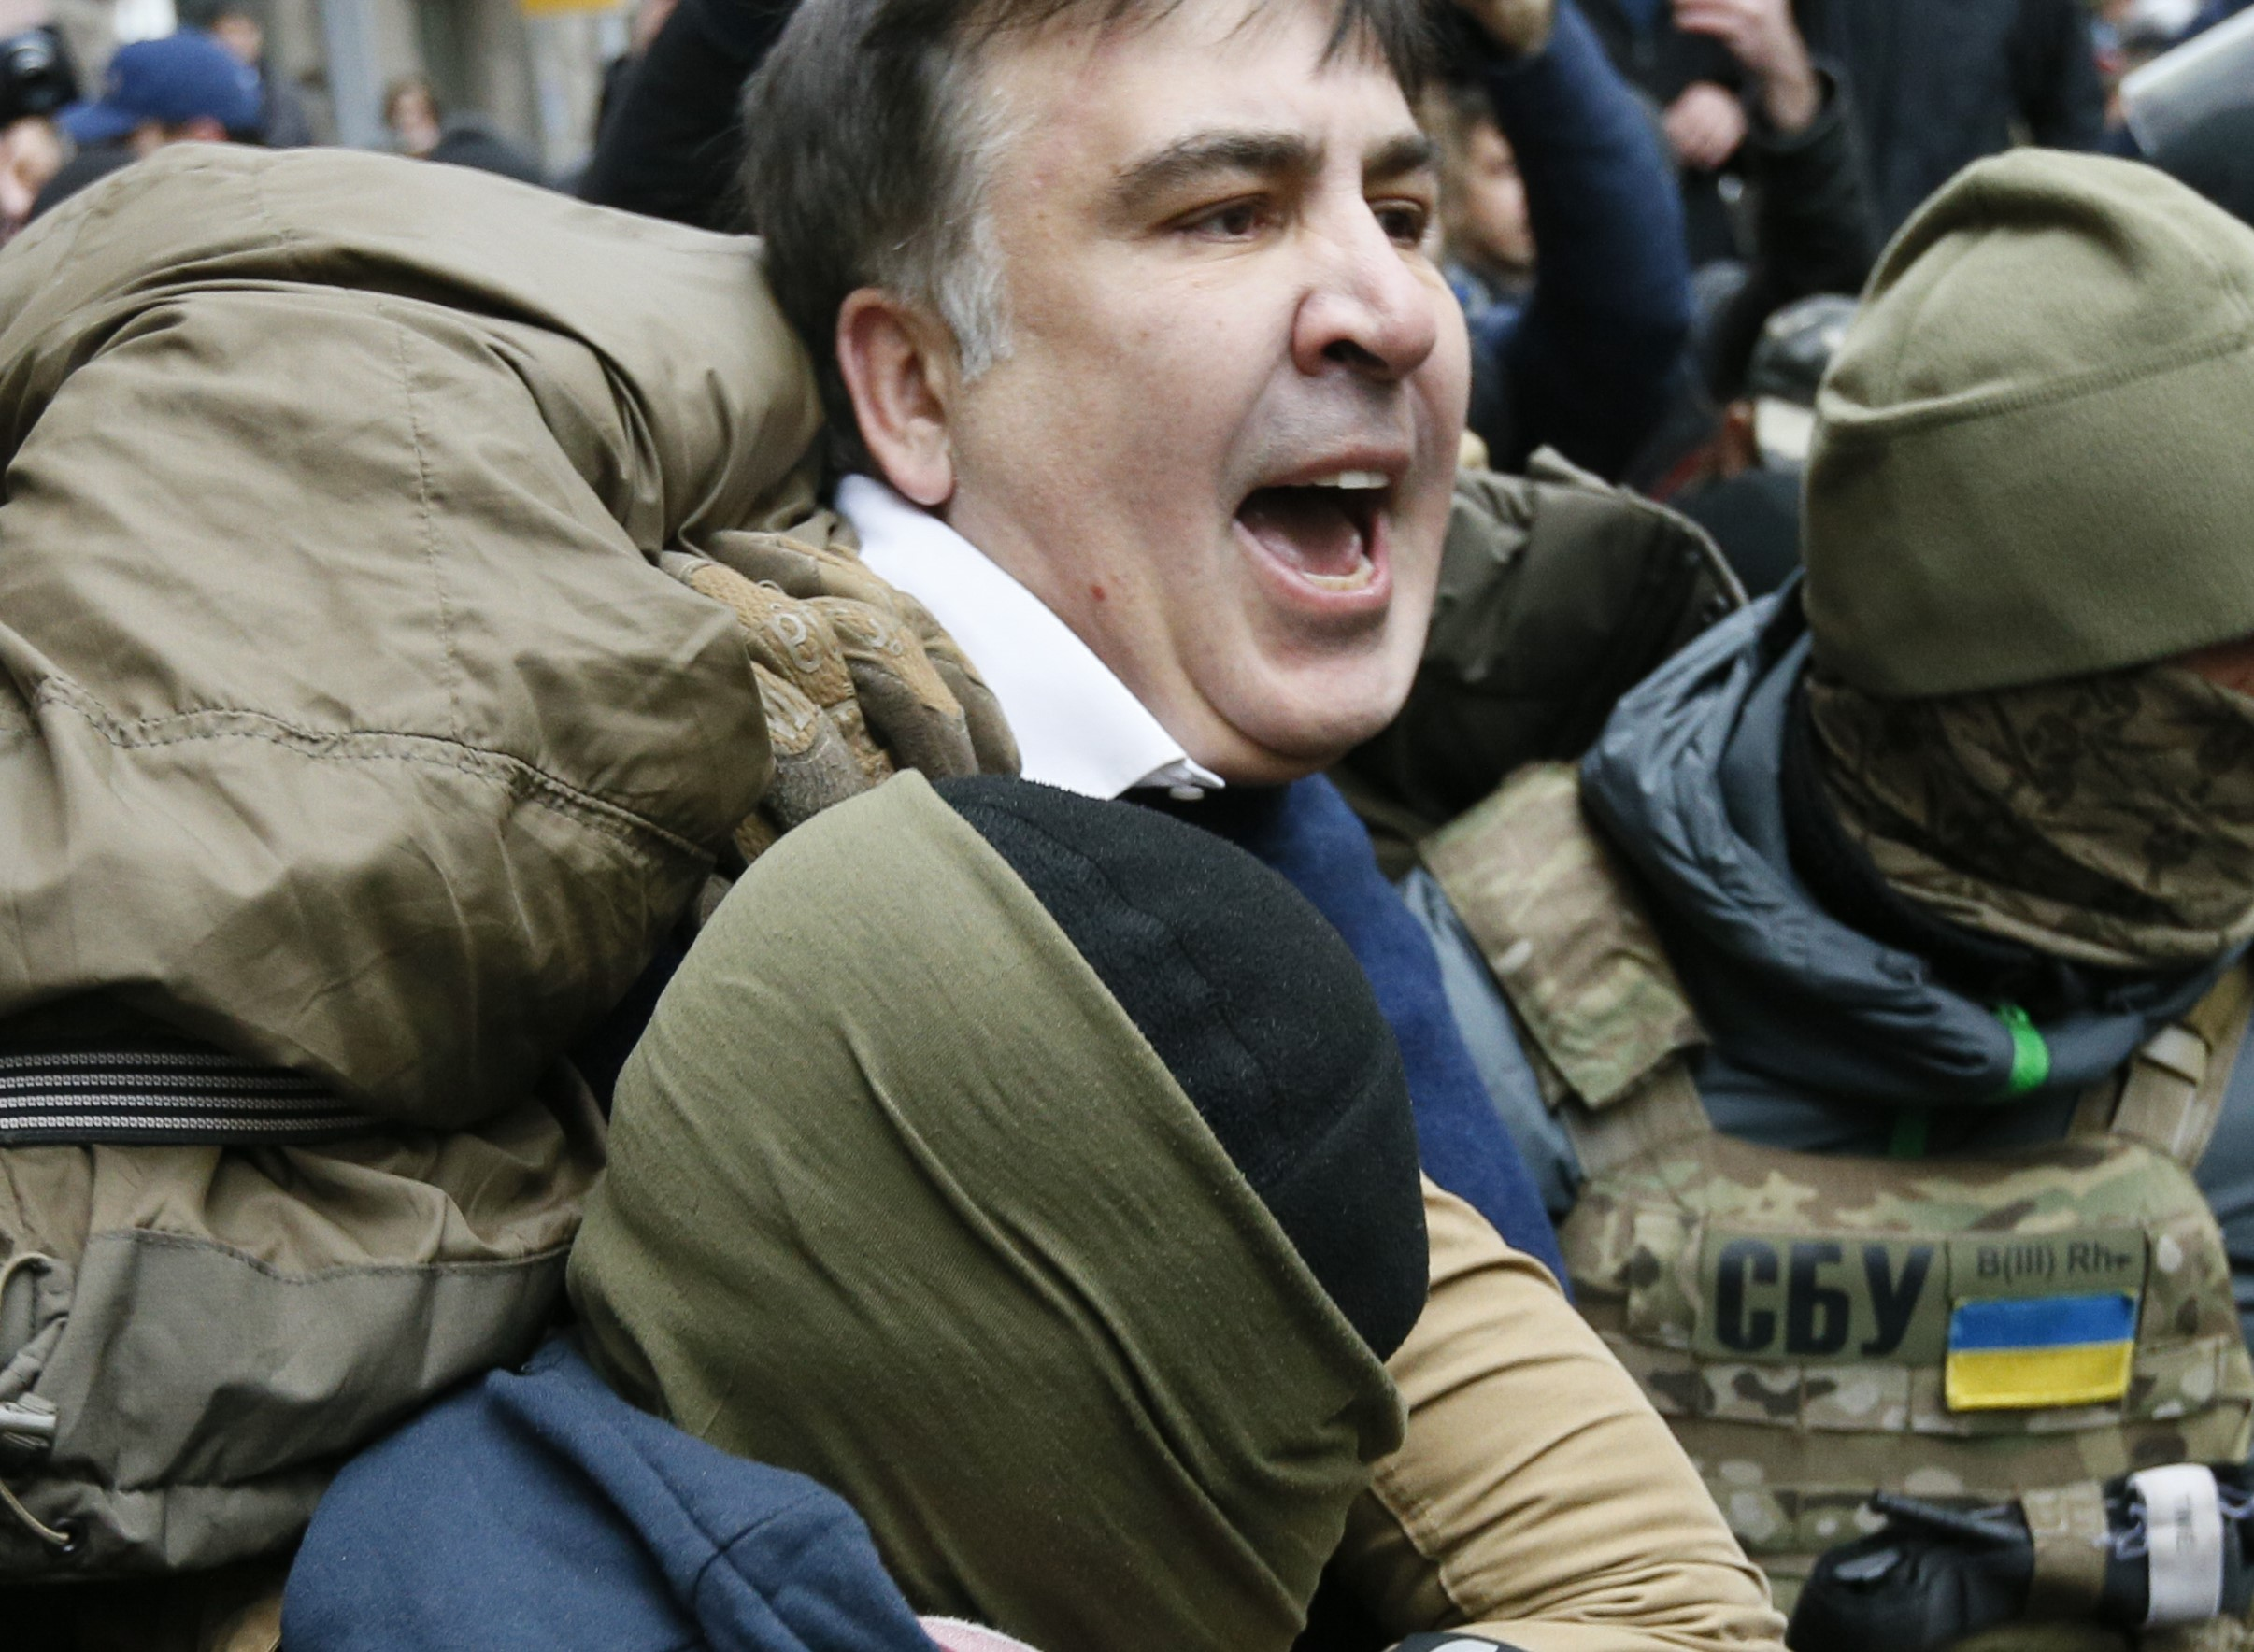 Former Georgian President Freed From Ukranian Police Custody by Supporters